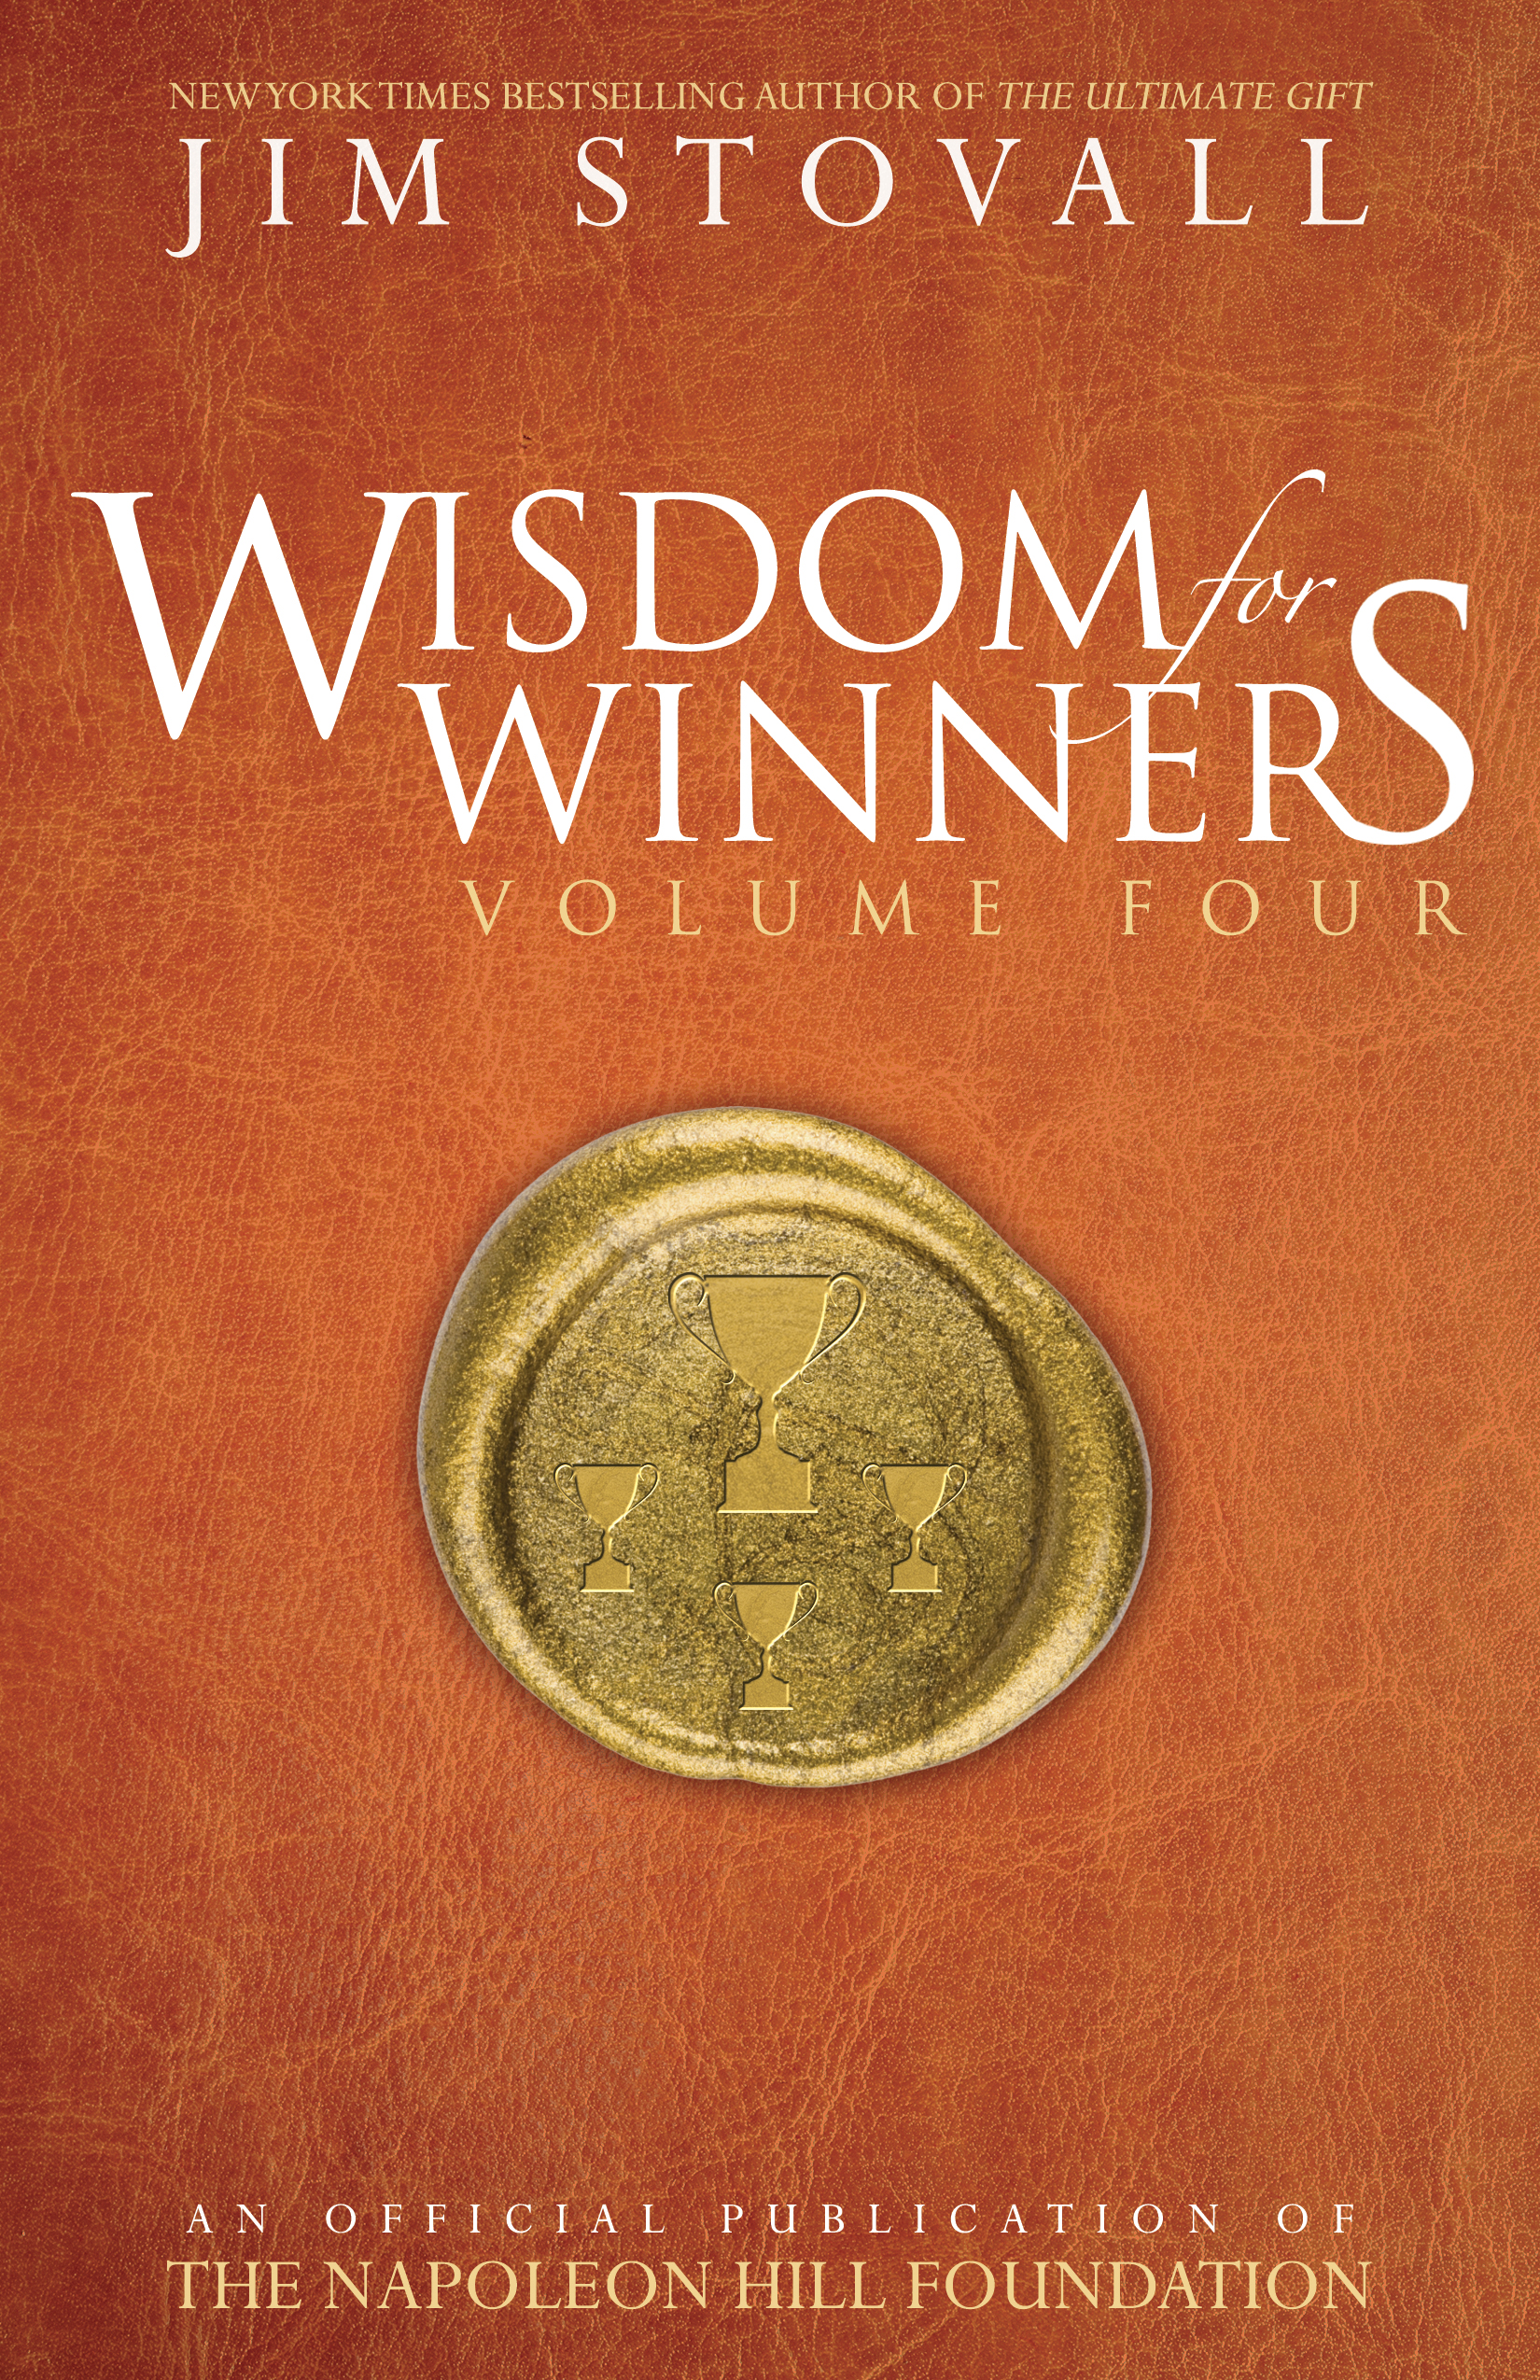 Image 3-Wisdom for Winners Vol 4 Cover.jpg